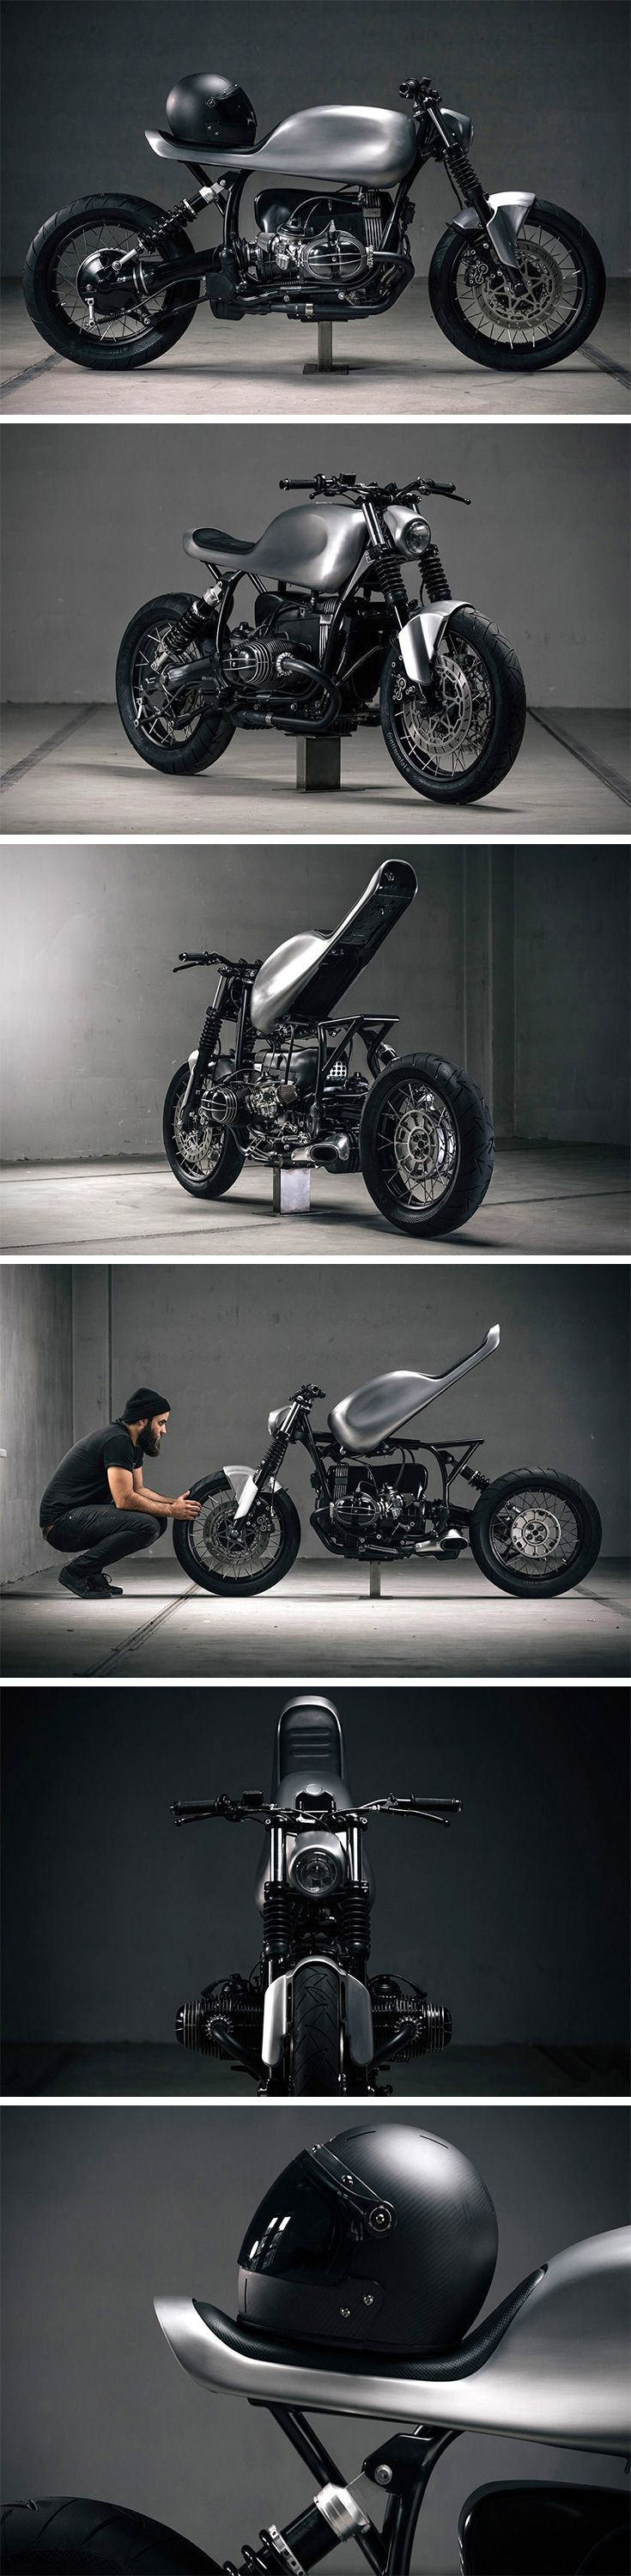 This is a custom BMW R100R cafe racer build by Paul Brauchart and Philipp Rabl of Austria-based Vagabund Moto. The stripped-down, streamlined design also sports near seamless seat integration to the tank with a built-in taillight, a matching front mudguard and headlight shell, minimalist Motogadget turn signals, and sleek black powder-coated rims.